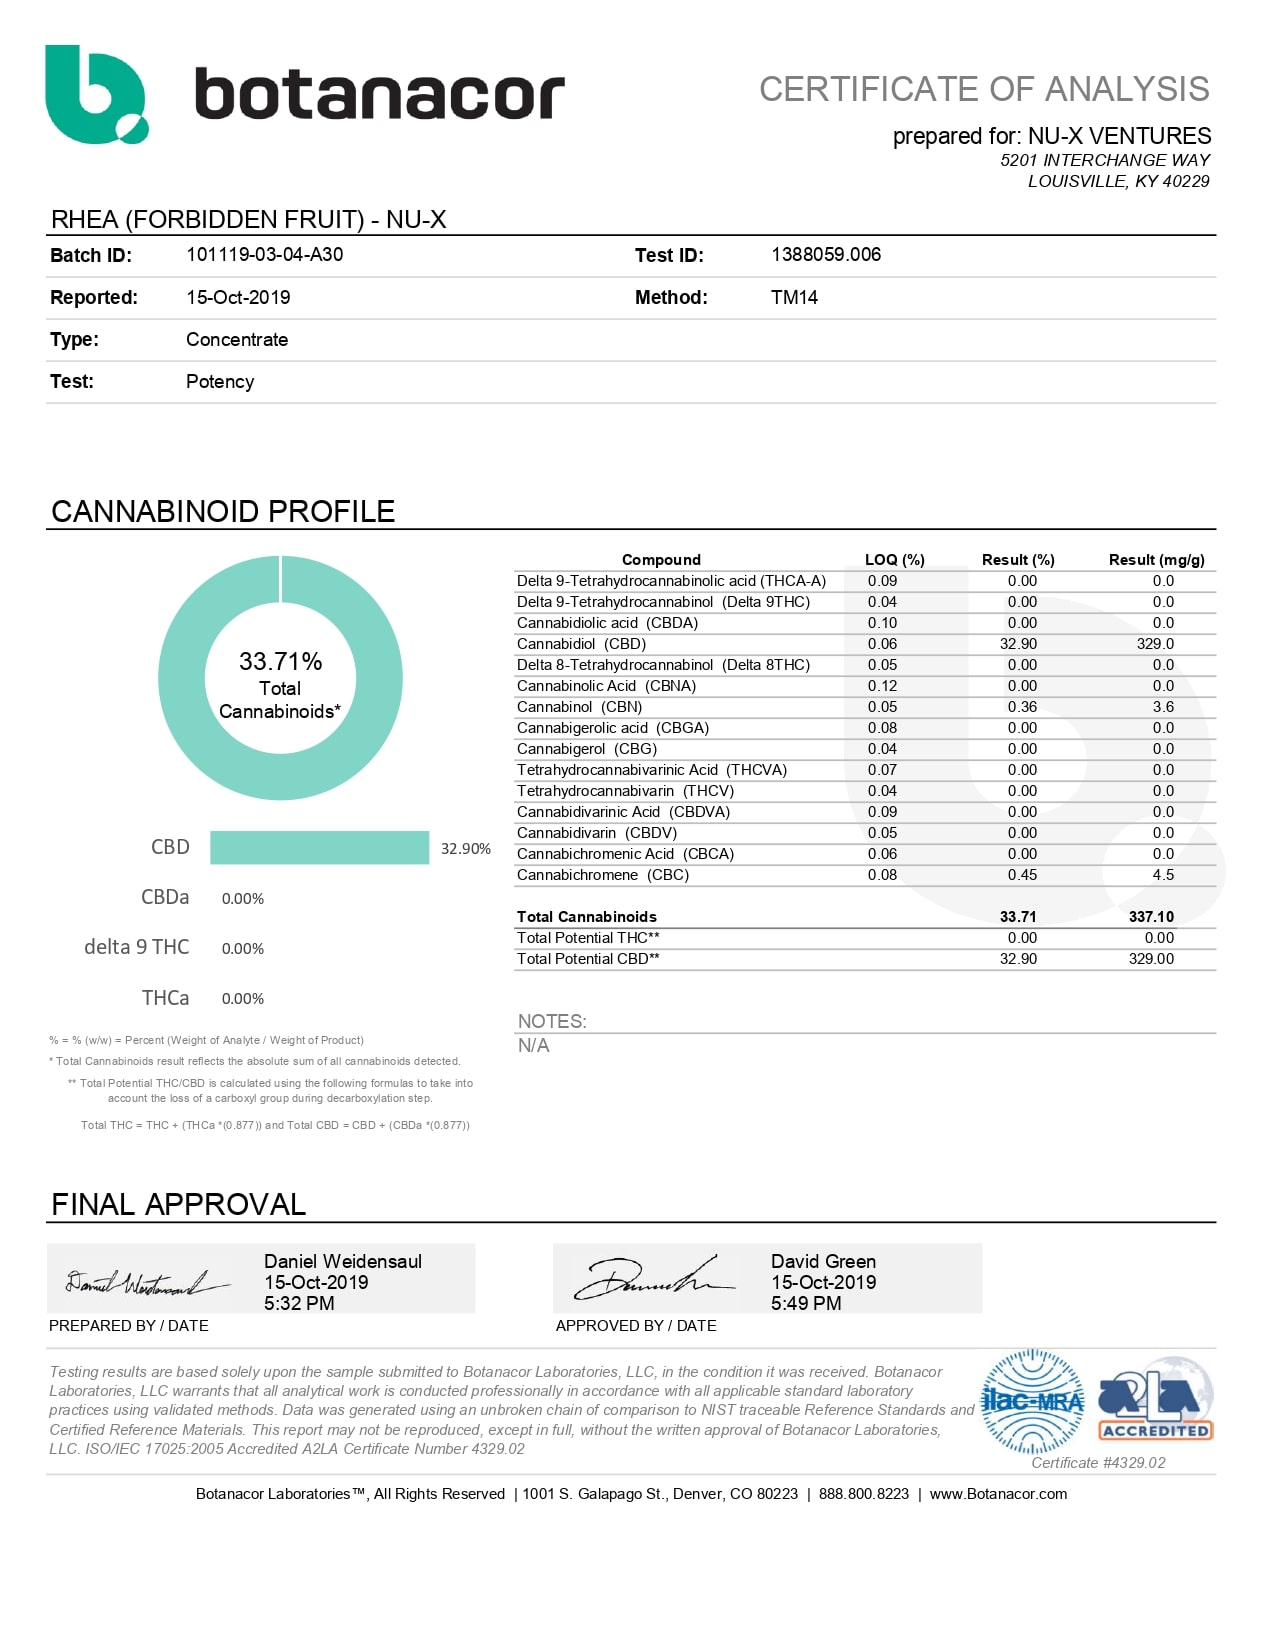 NU-X CBD eLiquid Concentrate Lab Report | Fruity - Rhea 3000mg